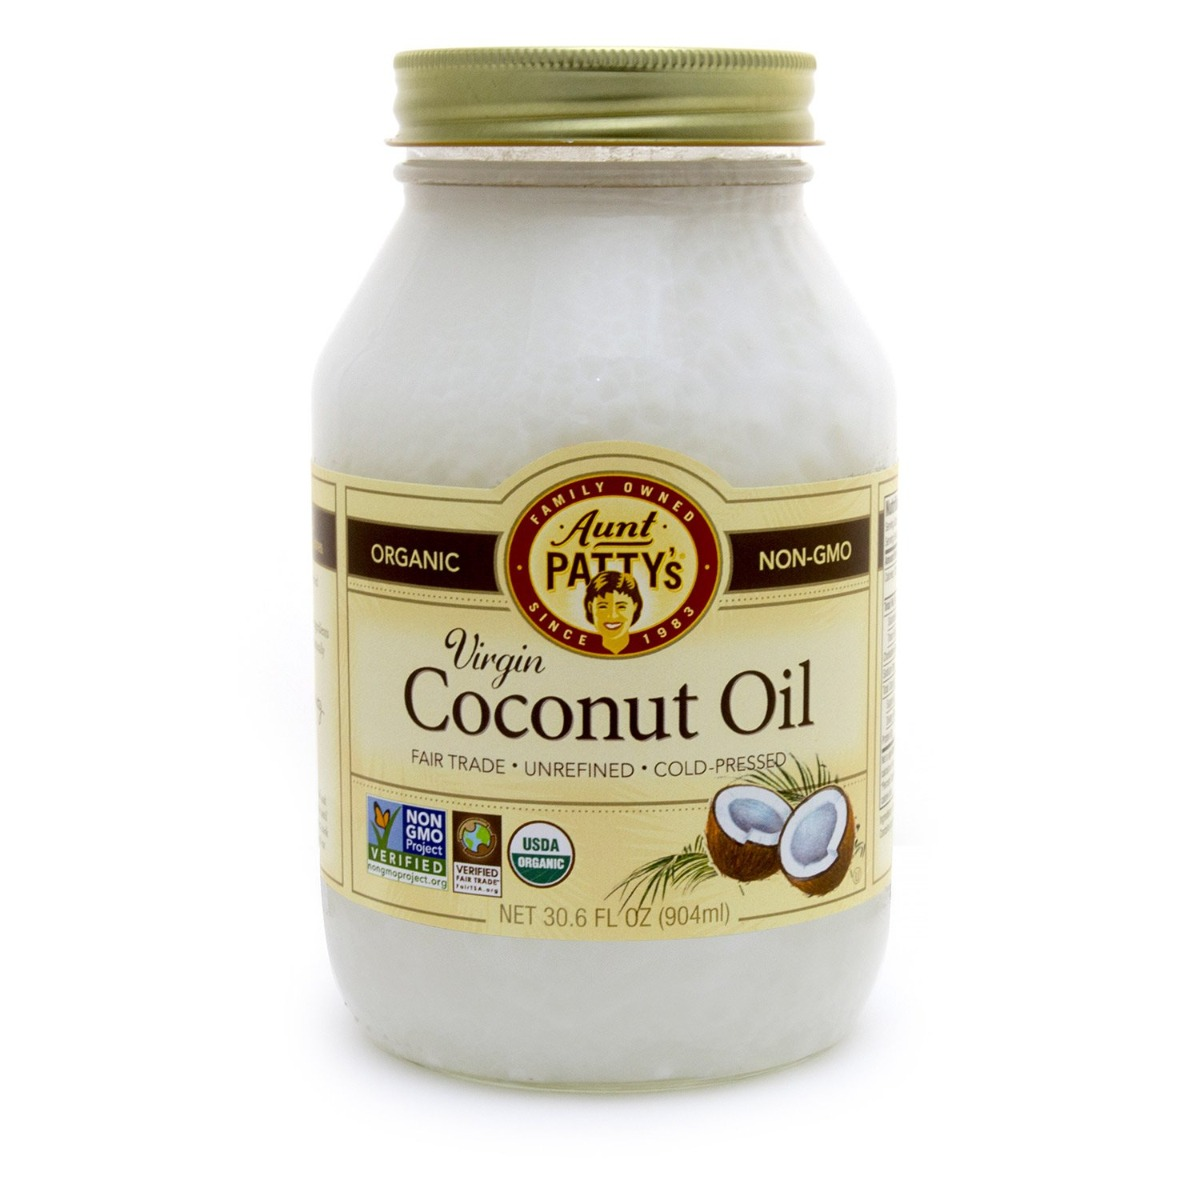 AUNT PATTY: Fair Trade Unrefined Virgin Coconut Oil, 30.6 oz